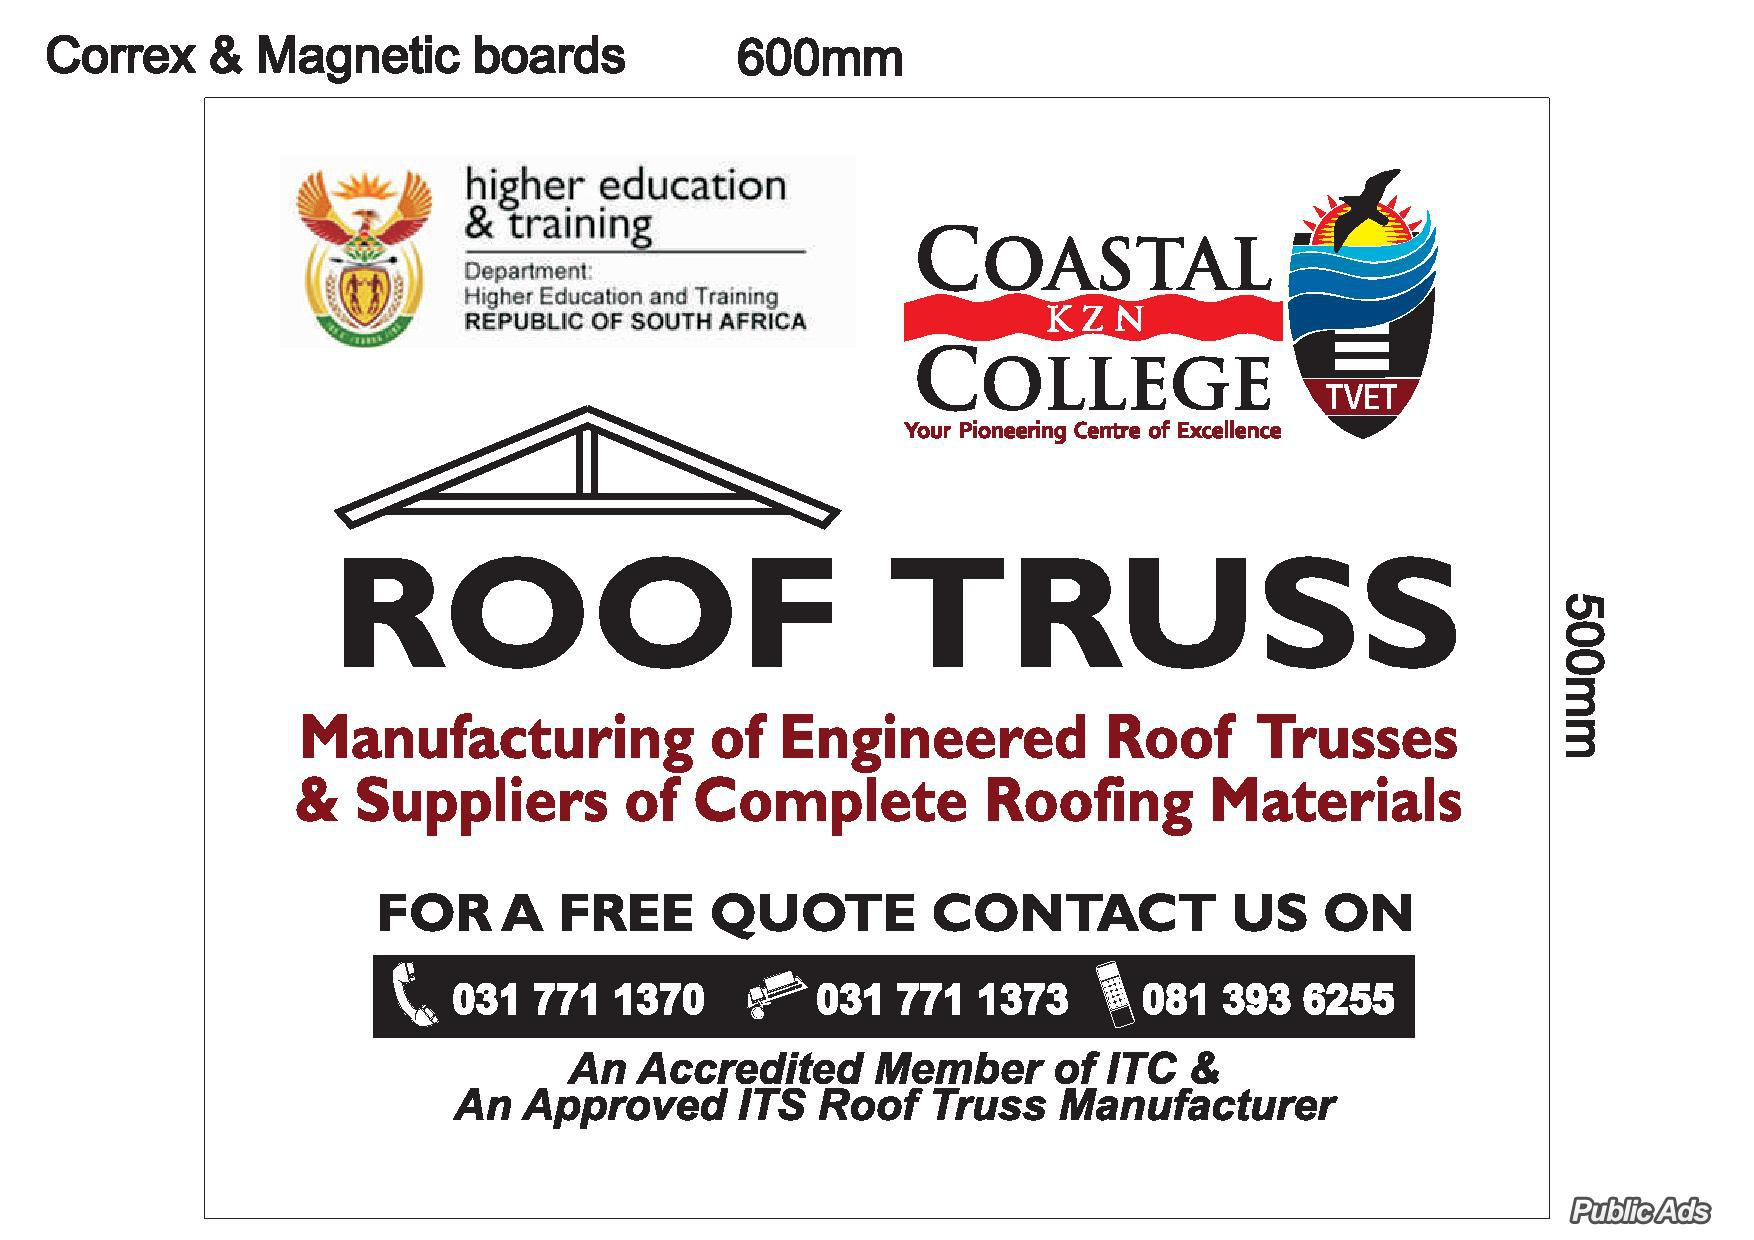 Coastal College Roof Truss Manufacturing Plant | Drummond | Public